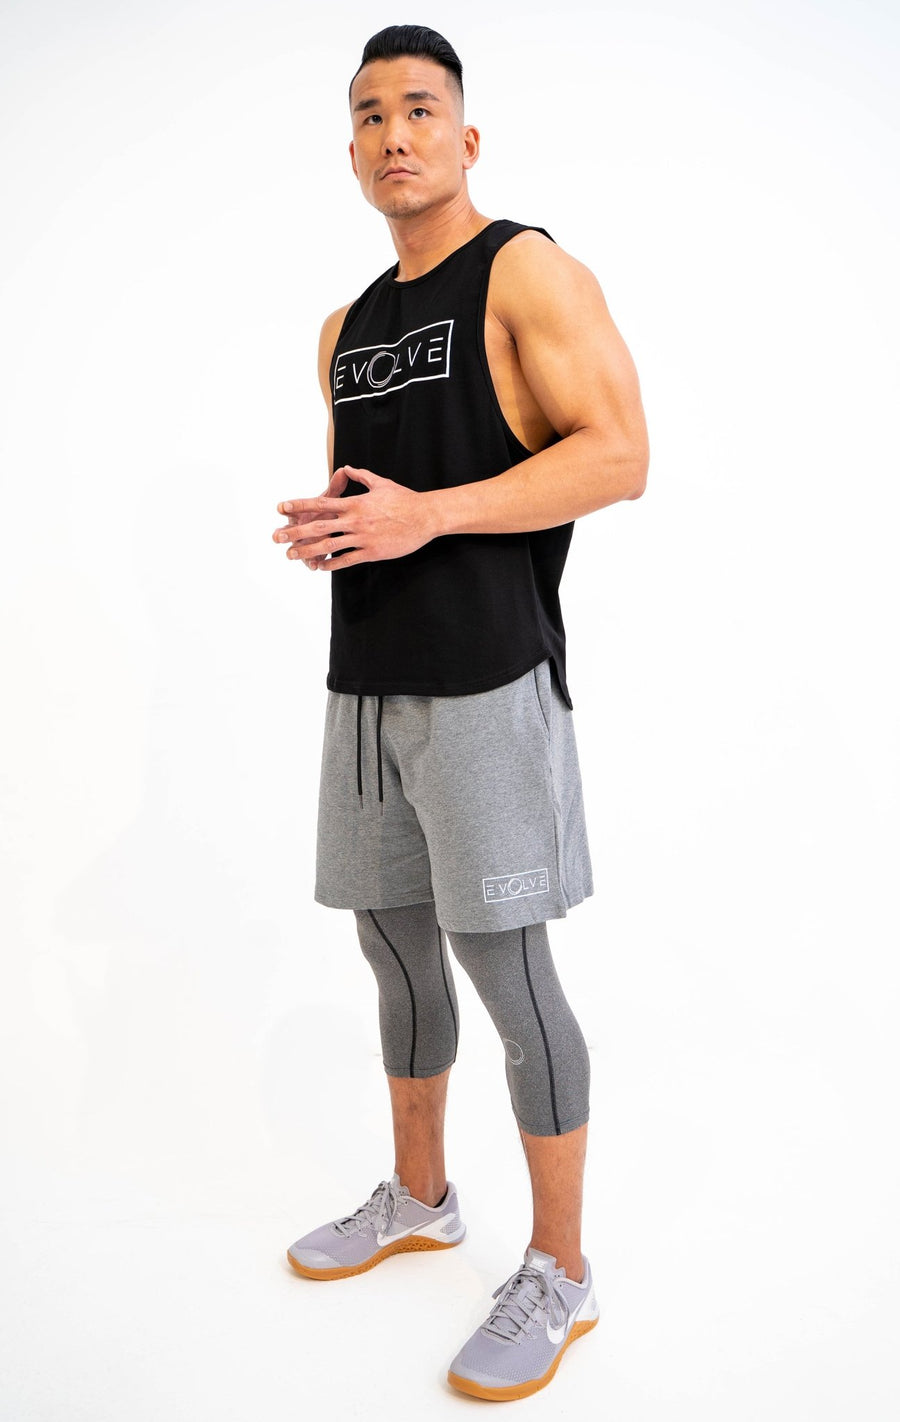 Velocity Shorts - Grey - EVOLVE FASHION